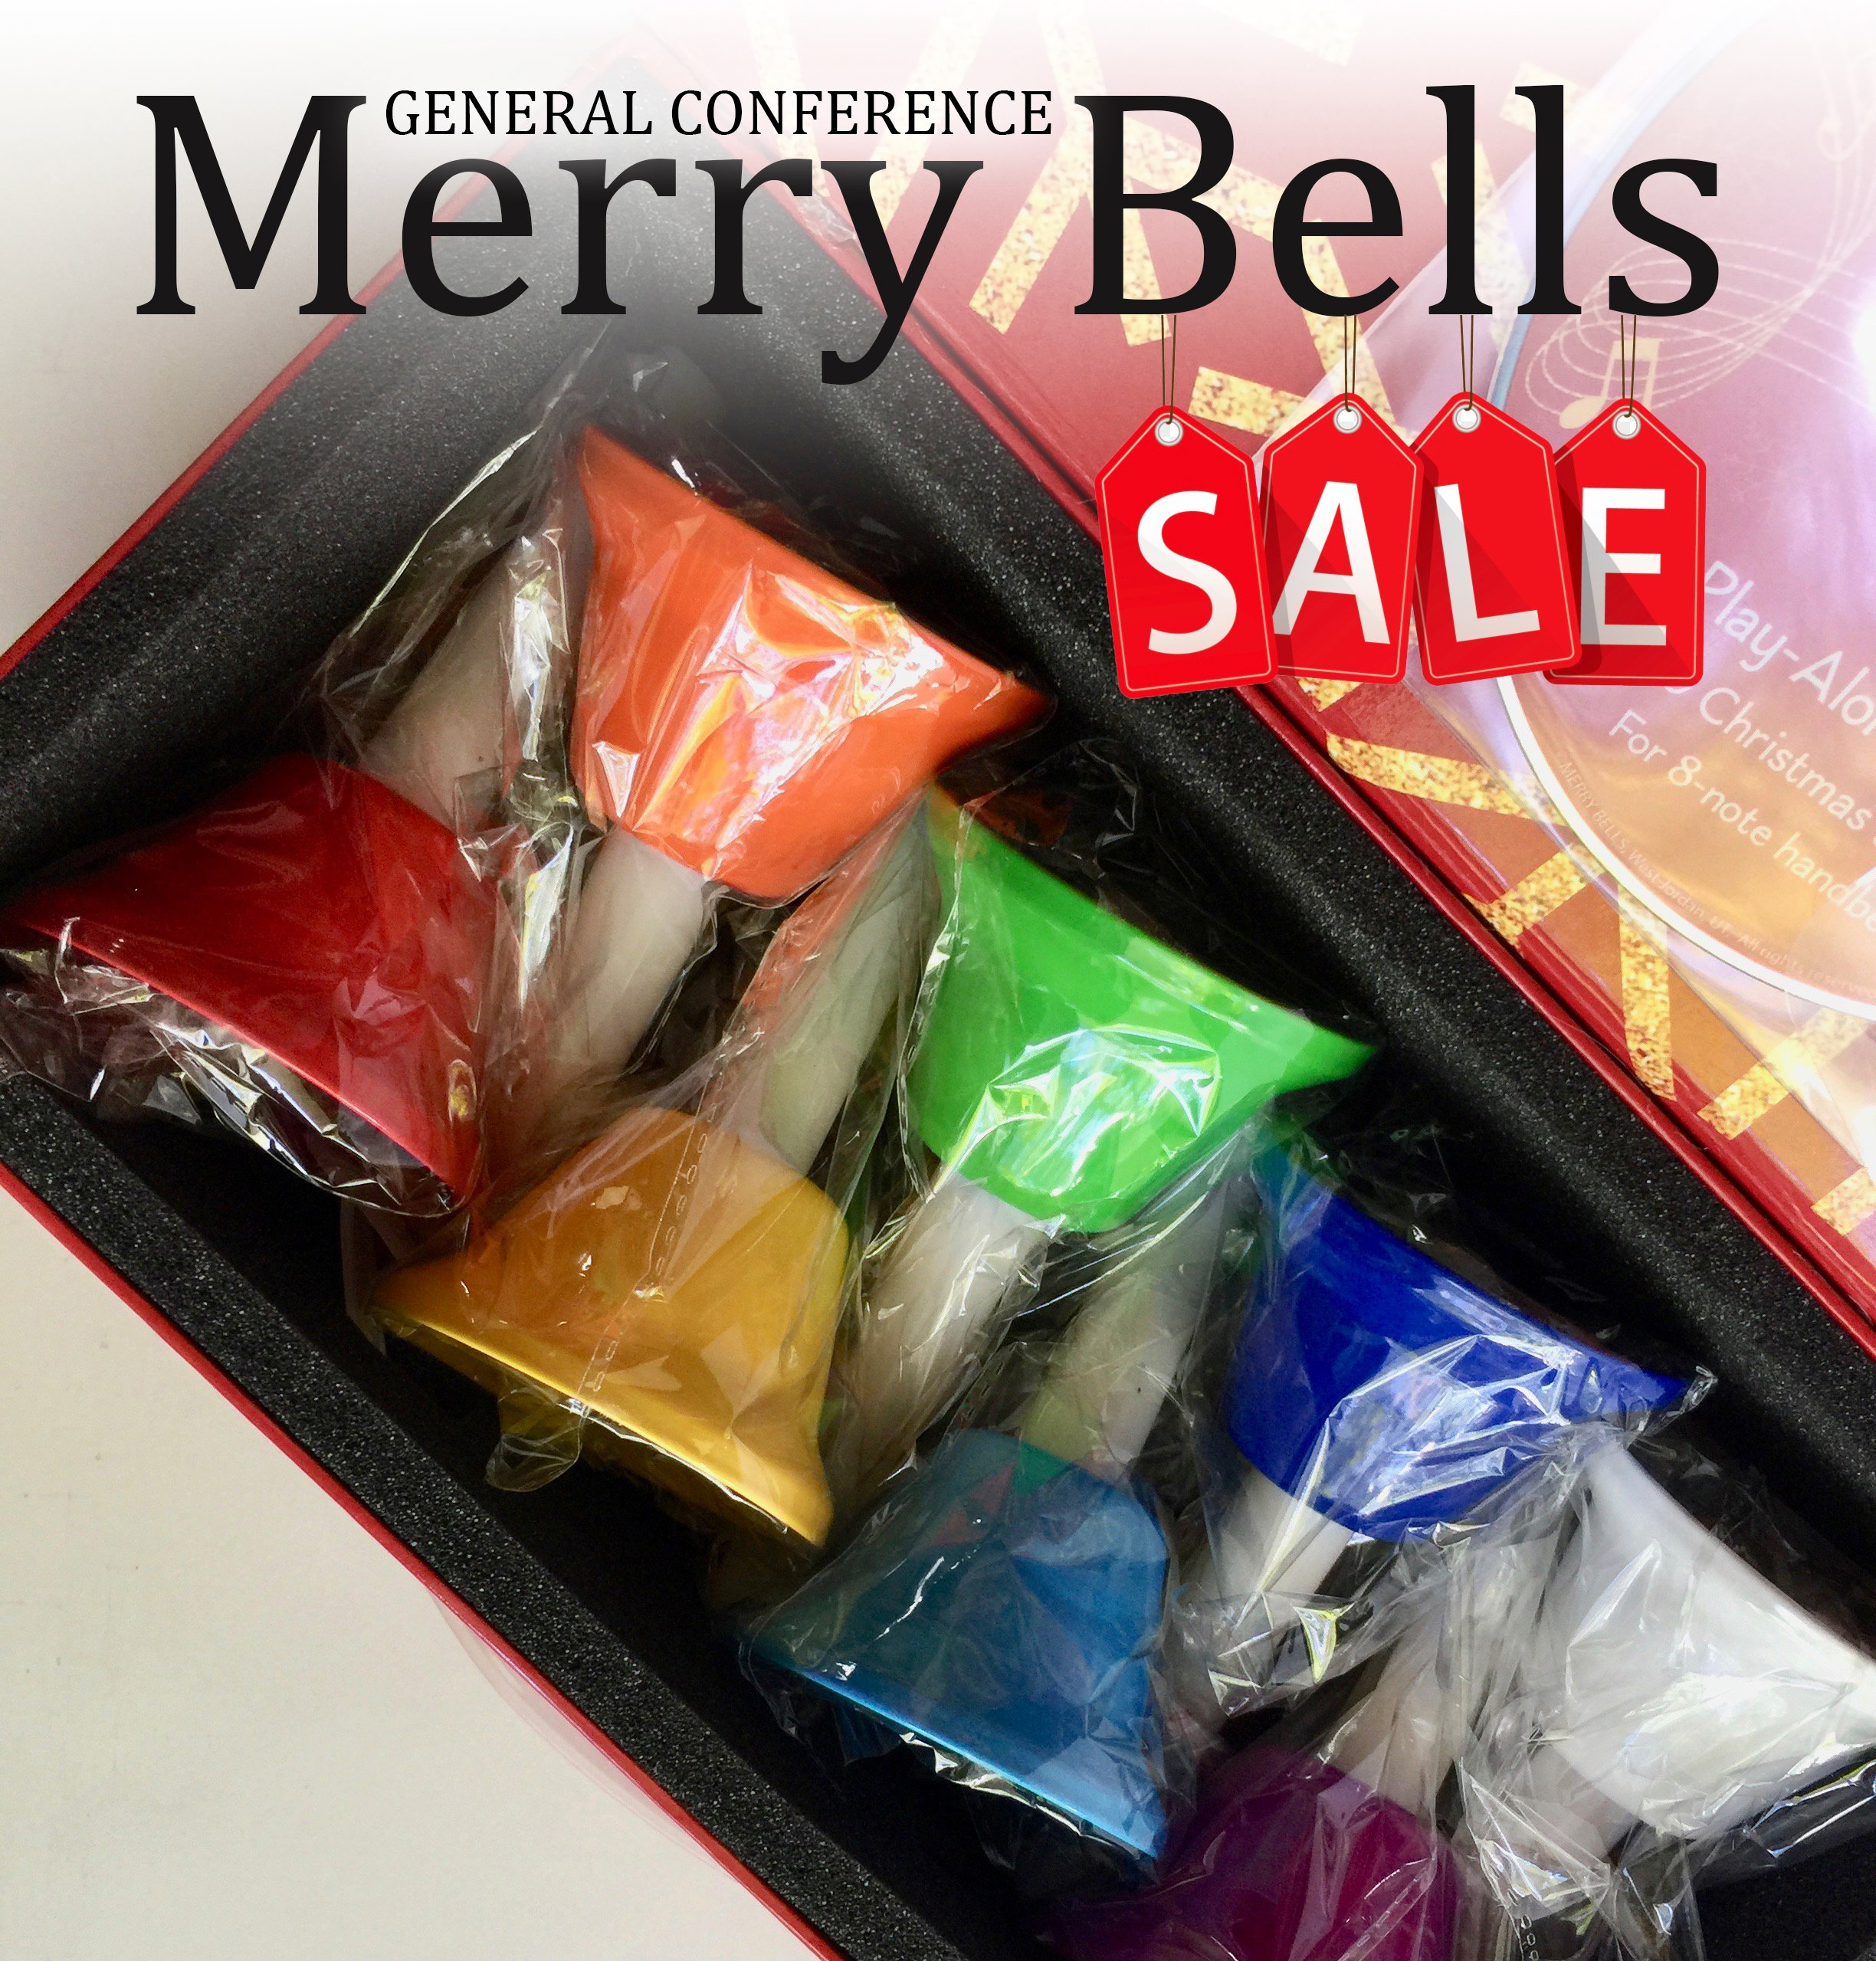 Camille's Primary Ideas: Merry Bells General Conference Sale